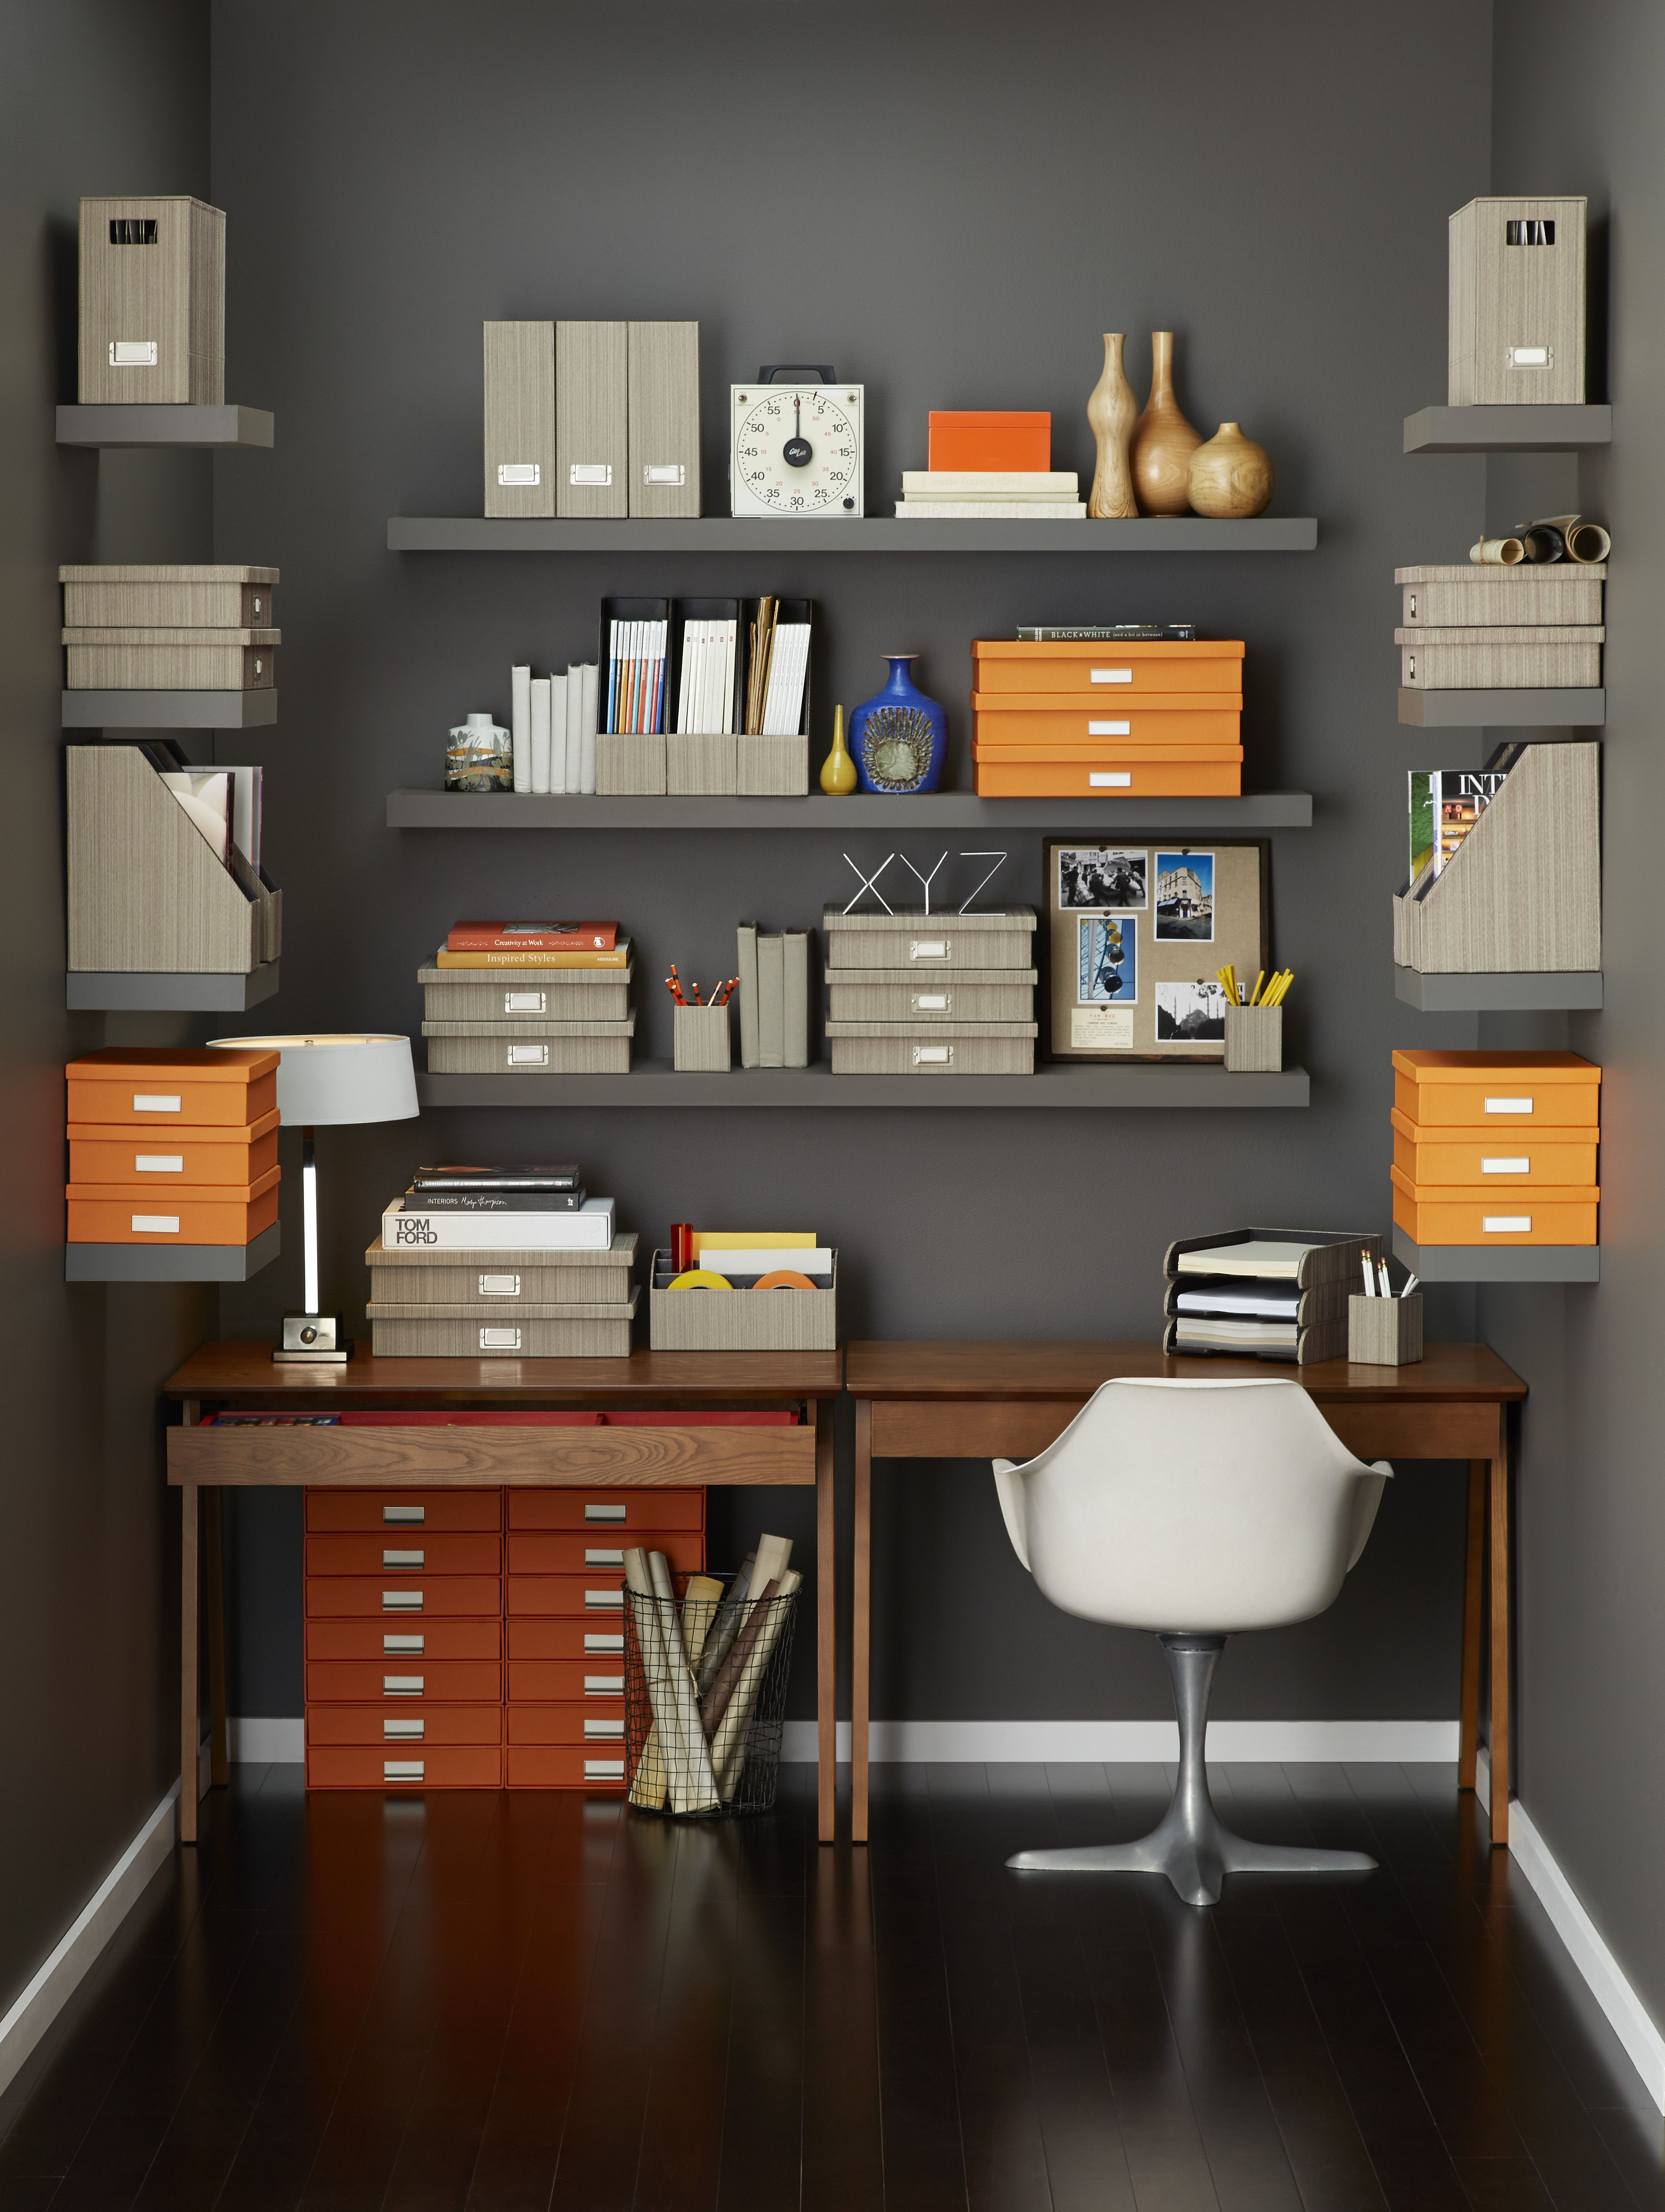 Maintain your home office organized! Paperwork, bills as